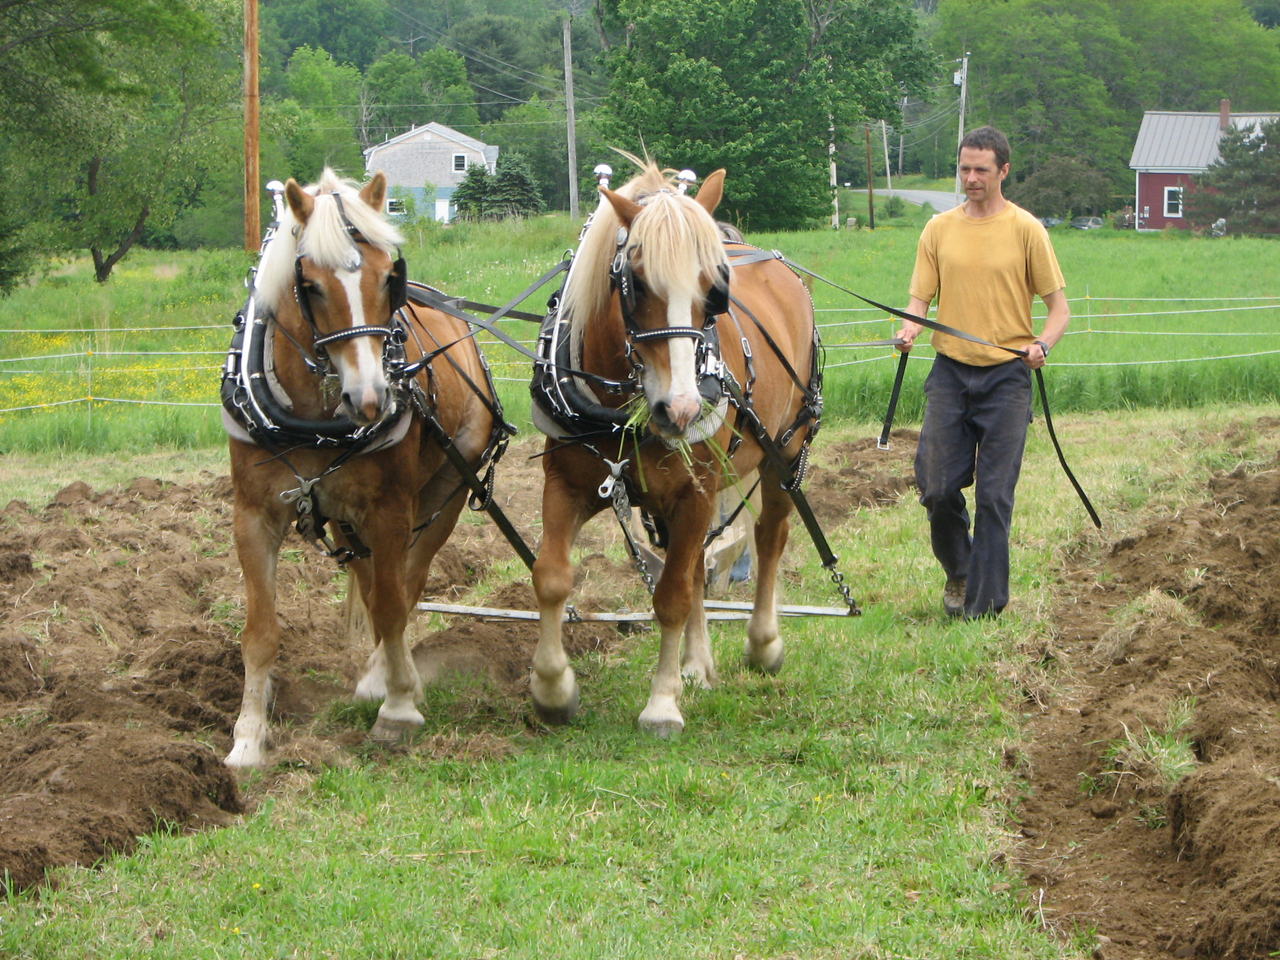 Plowing workshop features horses, mules — Midcoast — Bangor Daily